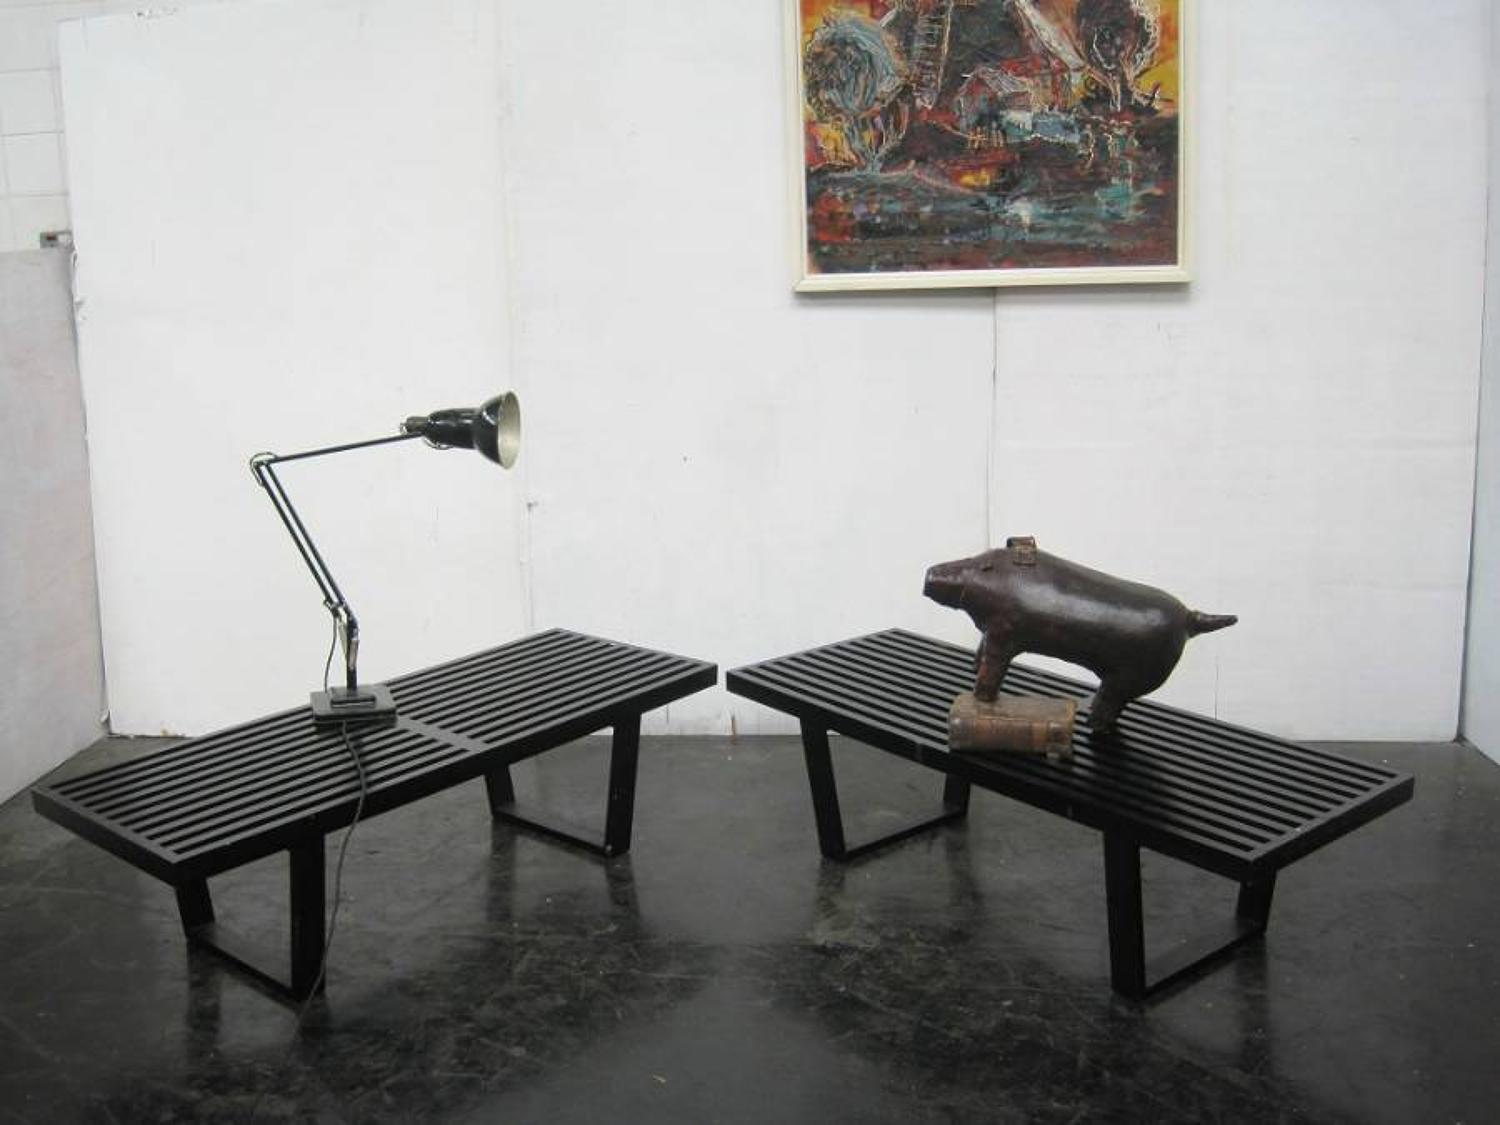 A pair of George Nelson benches